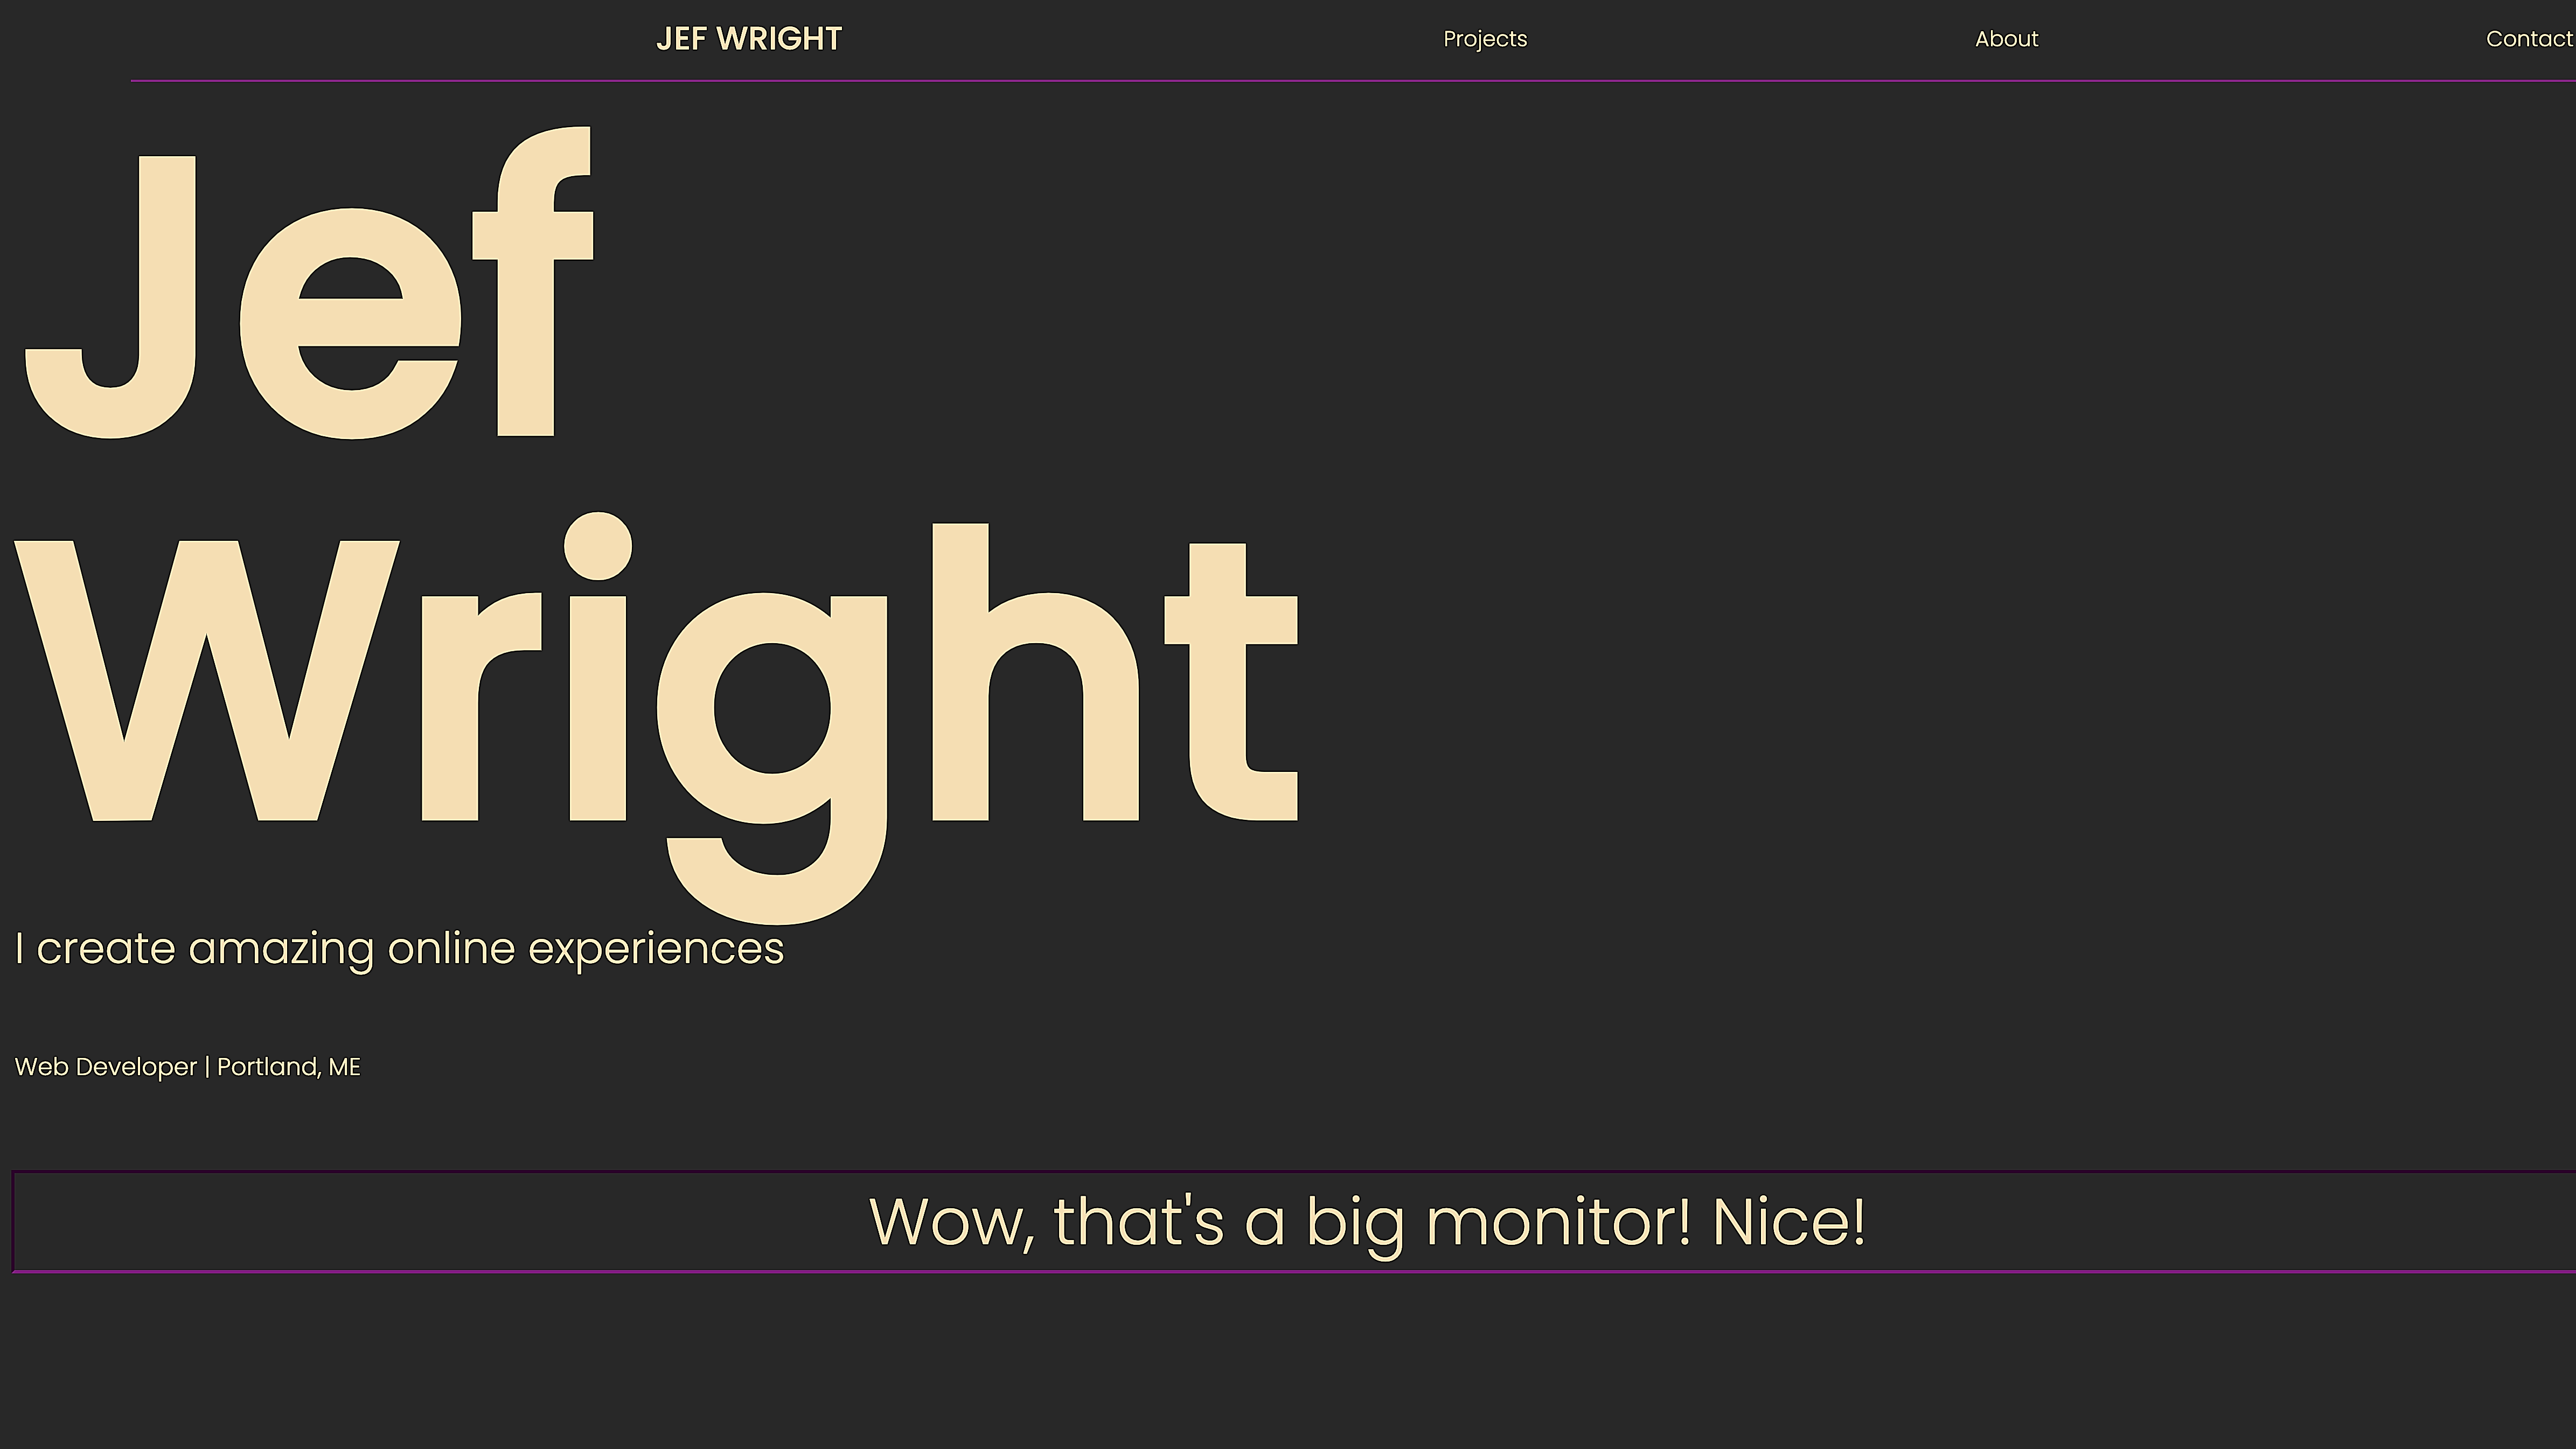 Jef Wright Personal Site